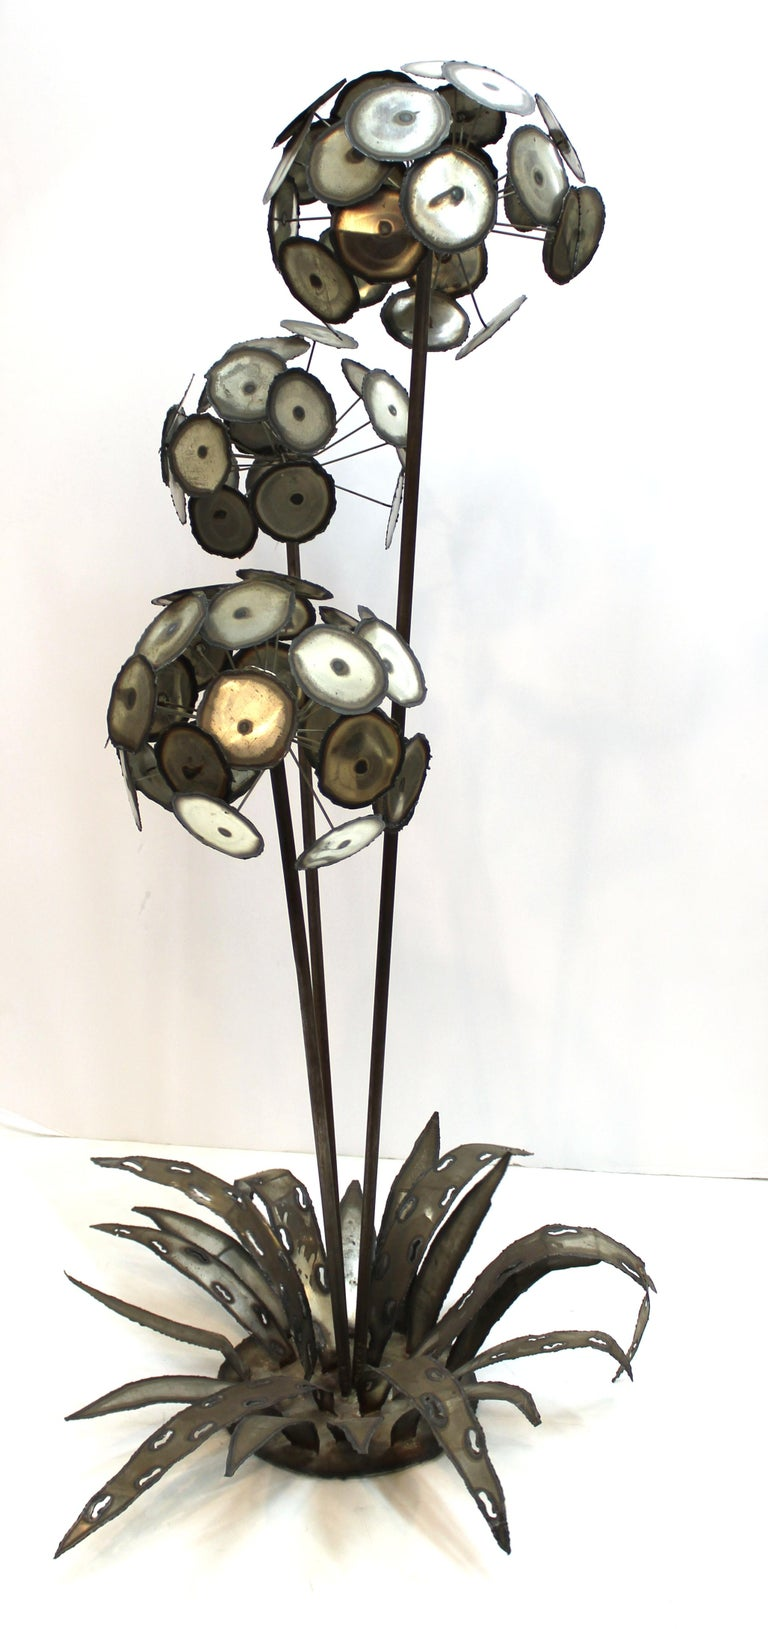 Brutalist monumental sized metal flower sculpture consisting of three flower heads on a base with leaves. One of the leaves has an illegibly signed metal tag. In good vintage condition with age-appropriate patina.